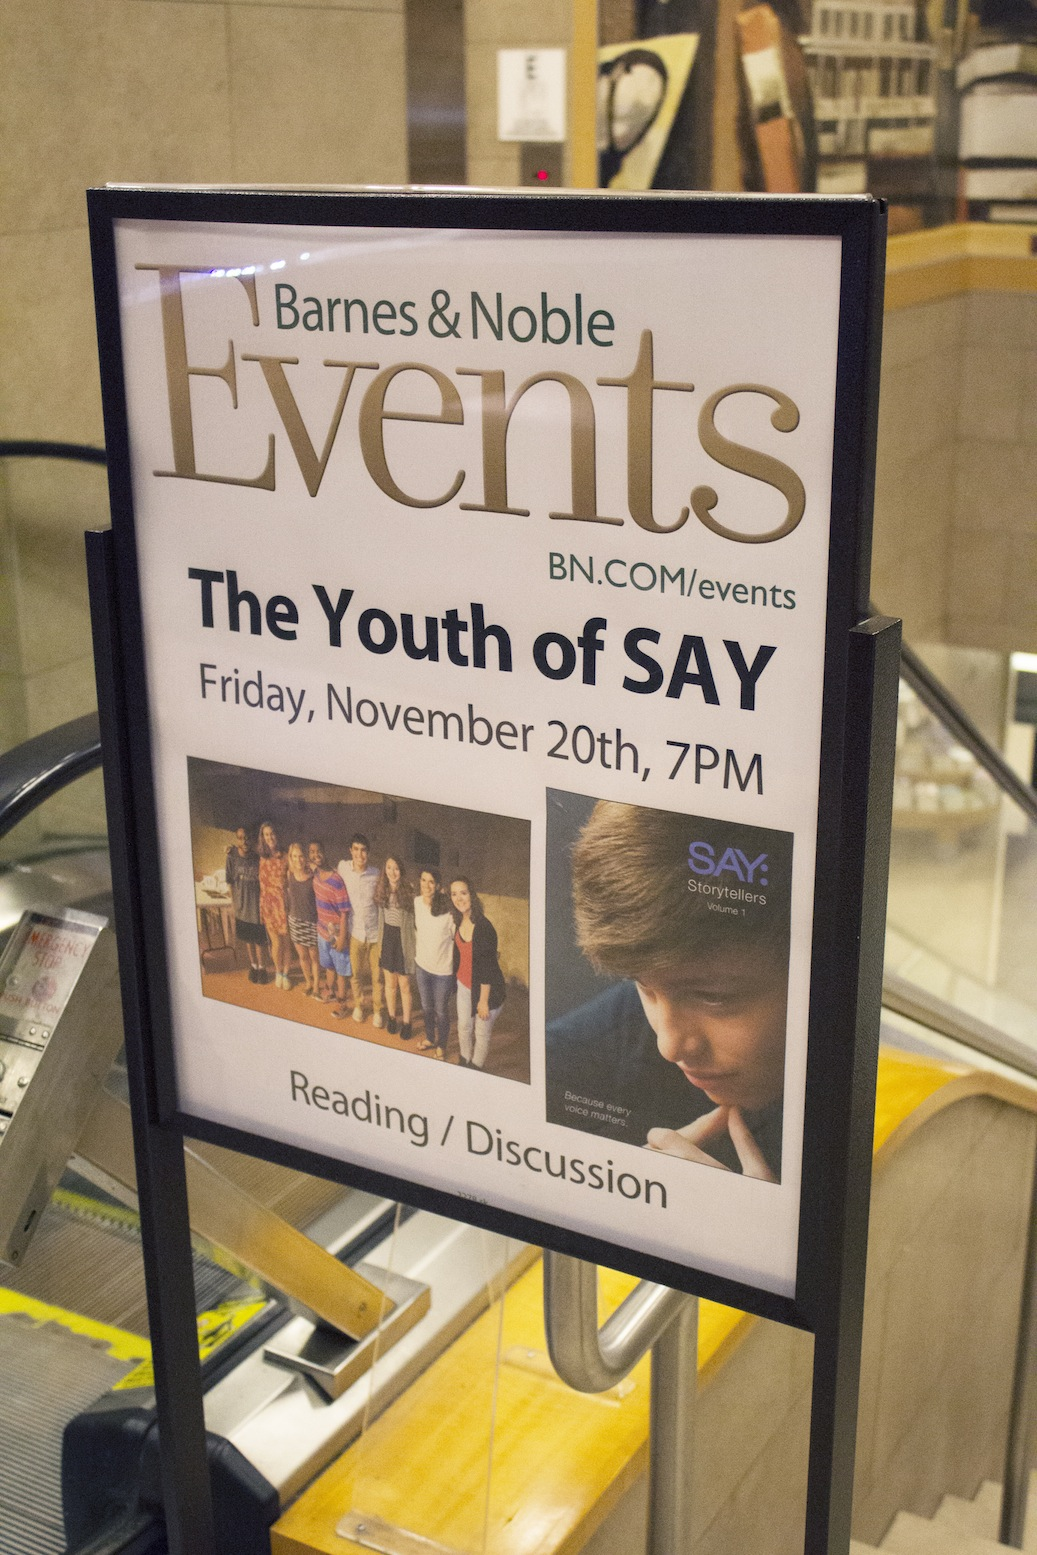 Barnes & Noble event